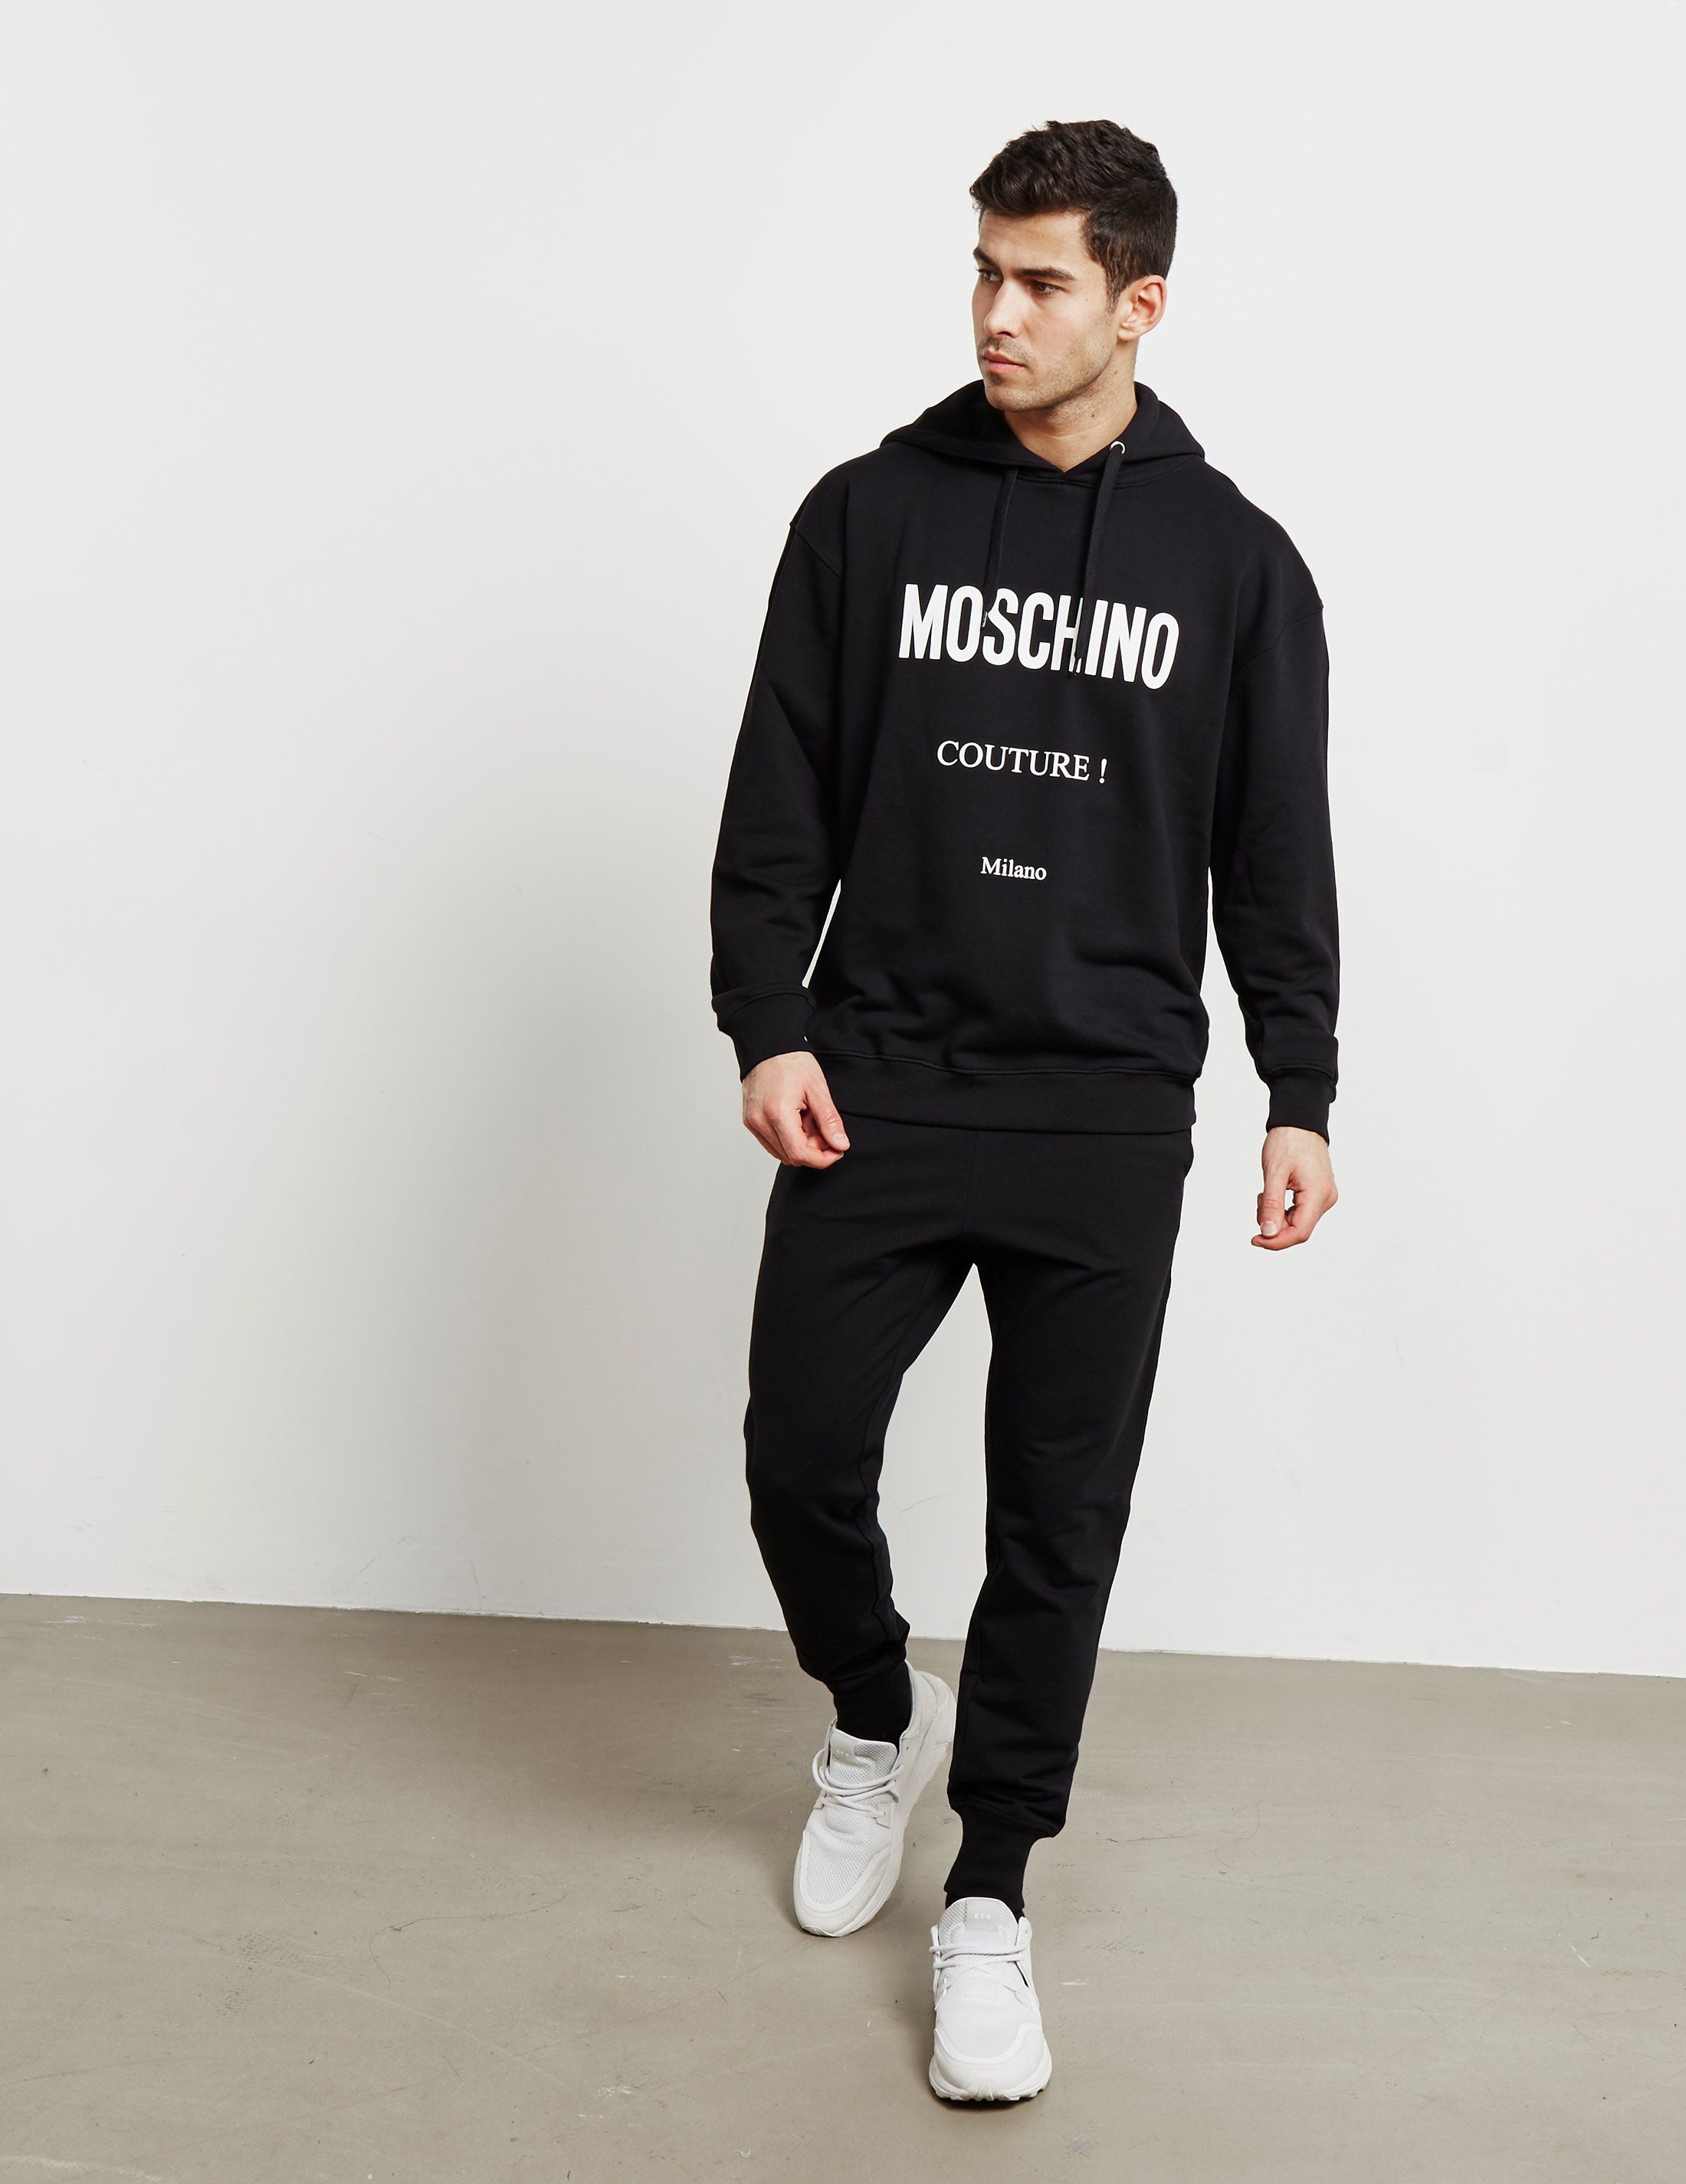 Moschino Couture Hoodie